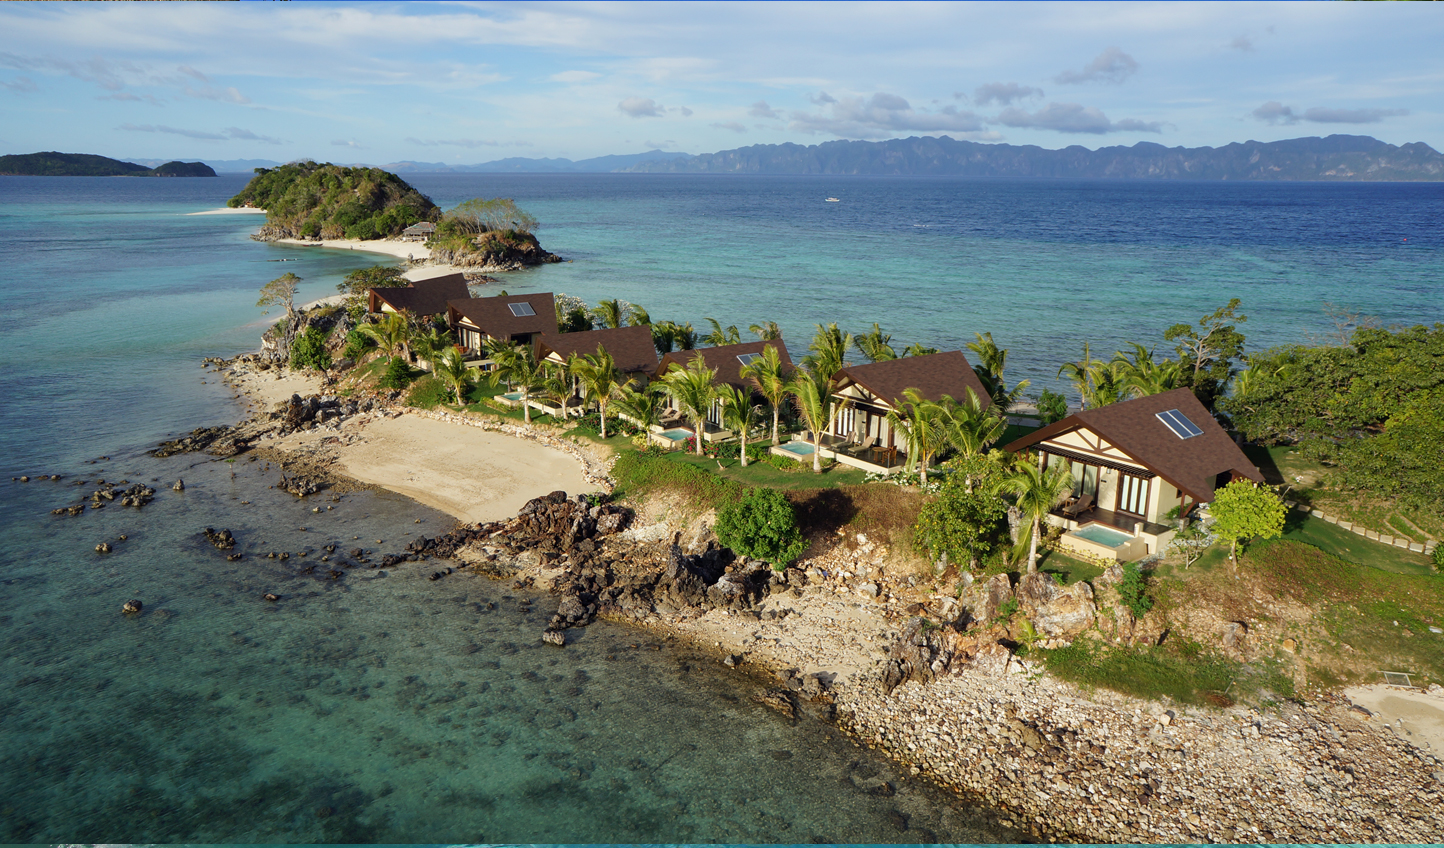 The Island Tip bungalows are some of our favourites